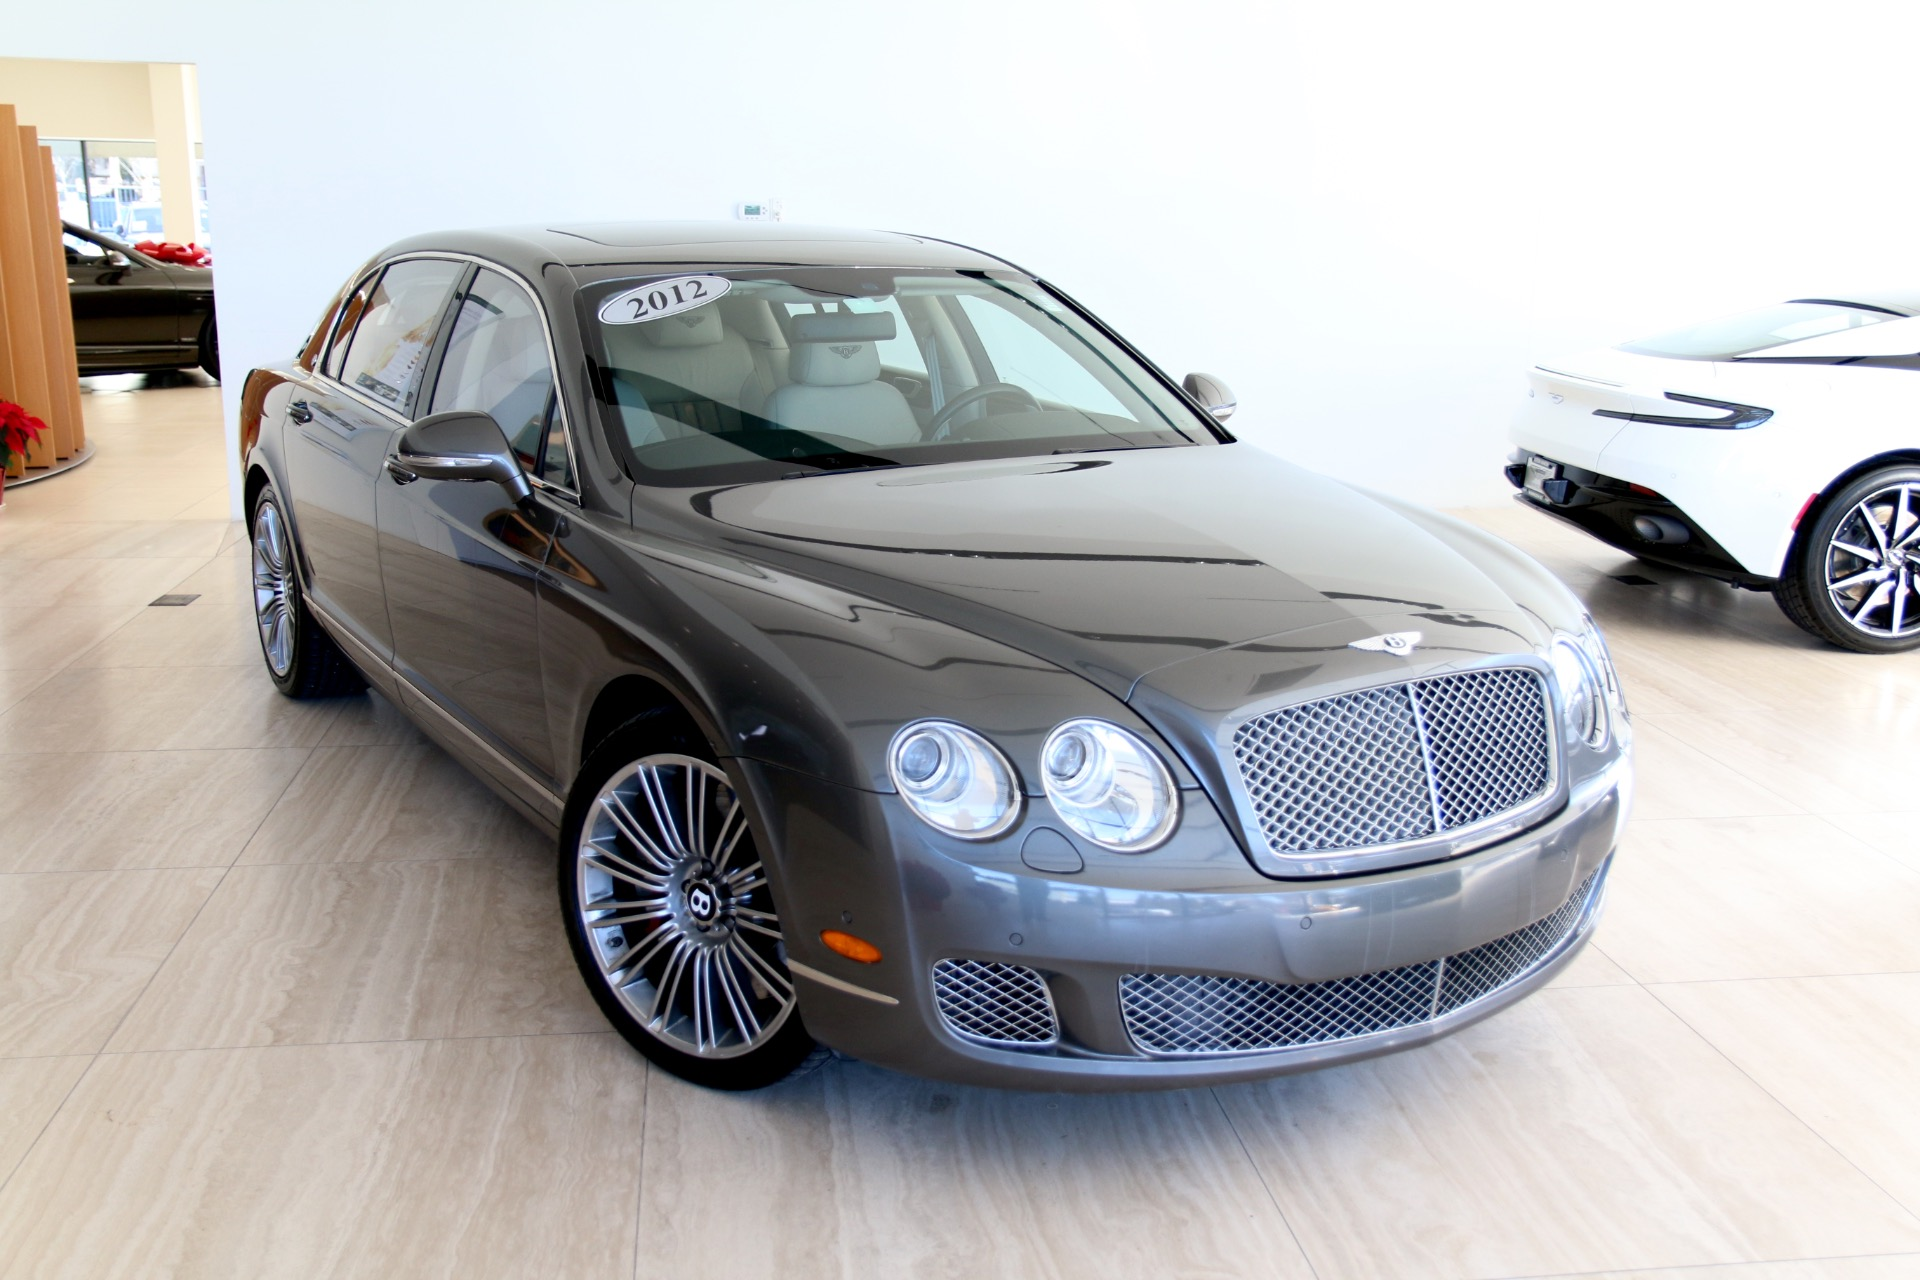 2012 bentley continental flying spur speed stock 8n066755a for sale near vienna va va. Black Bedroom Furniture Sets. Home Design Ideas